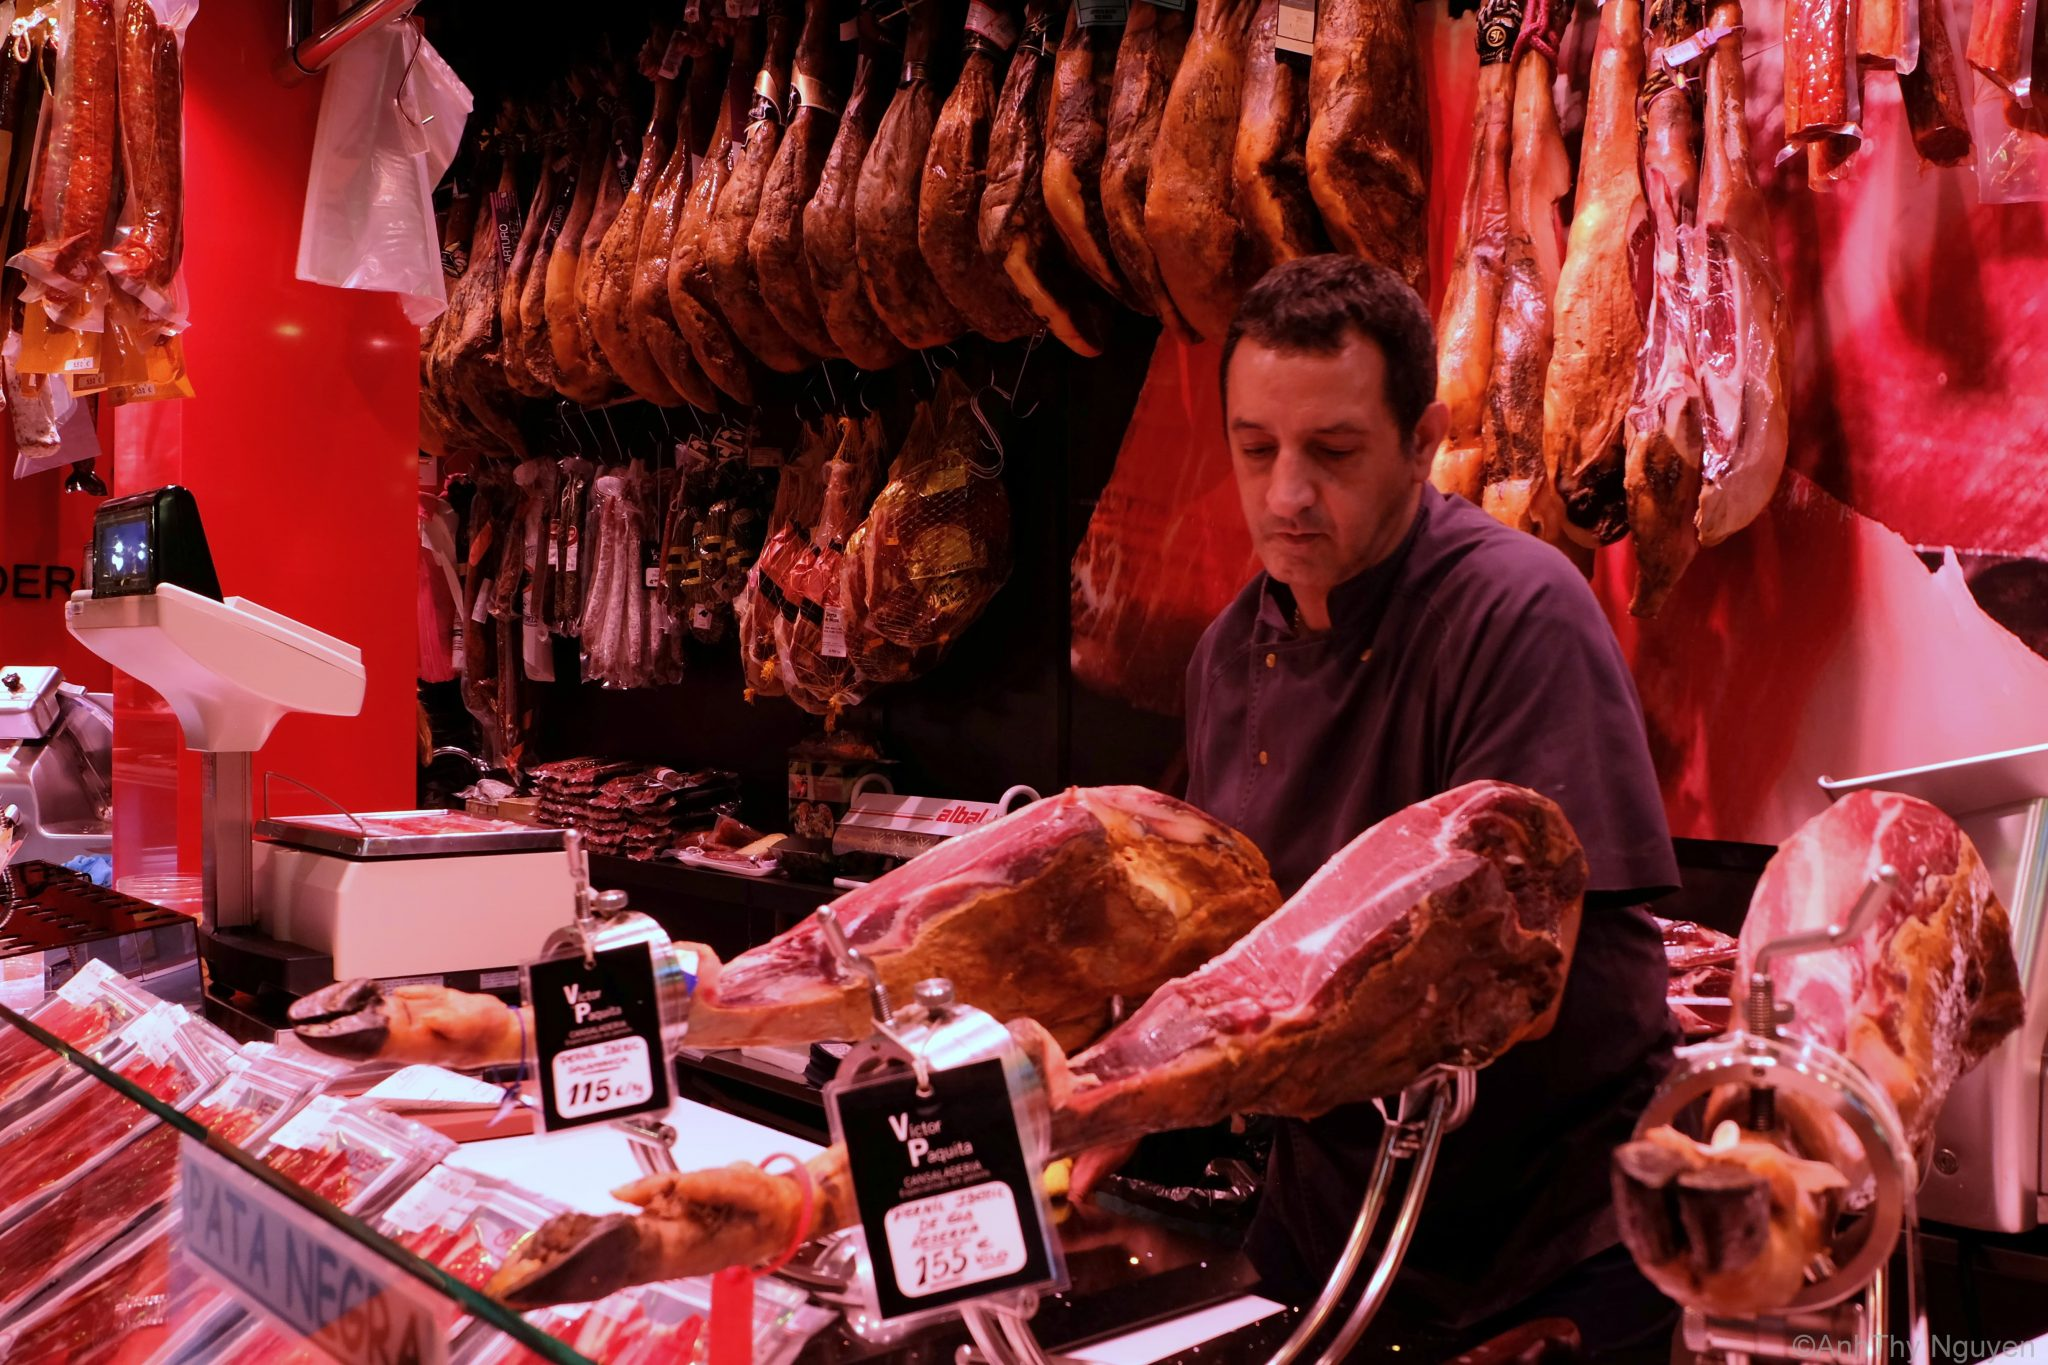 Doing business in La Boqueria Food Market